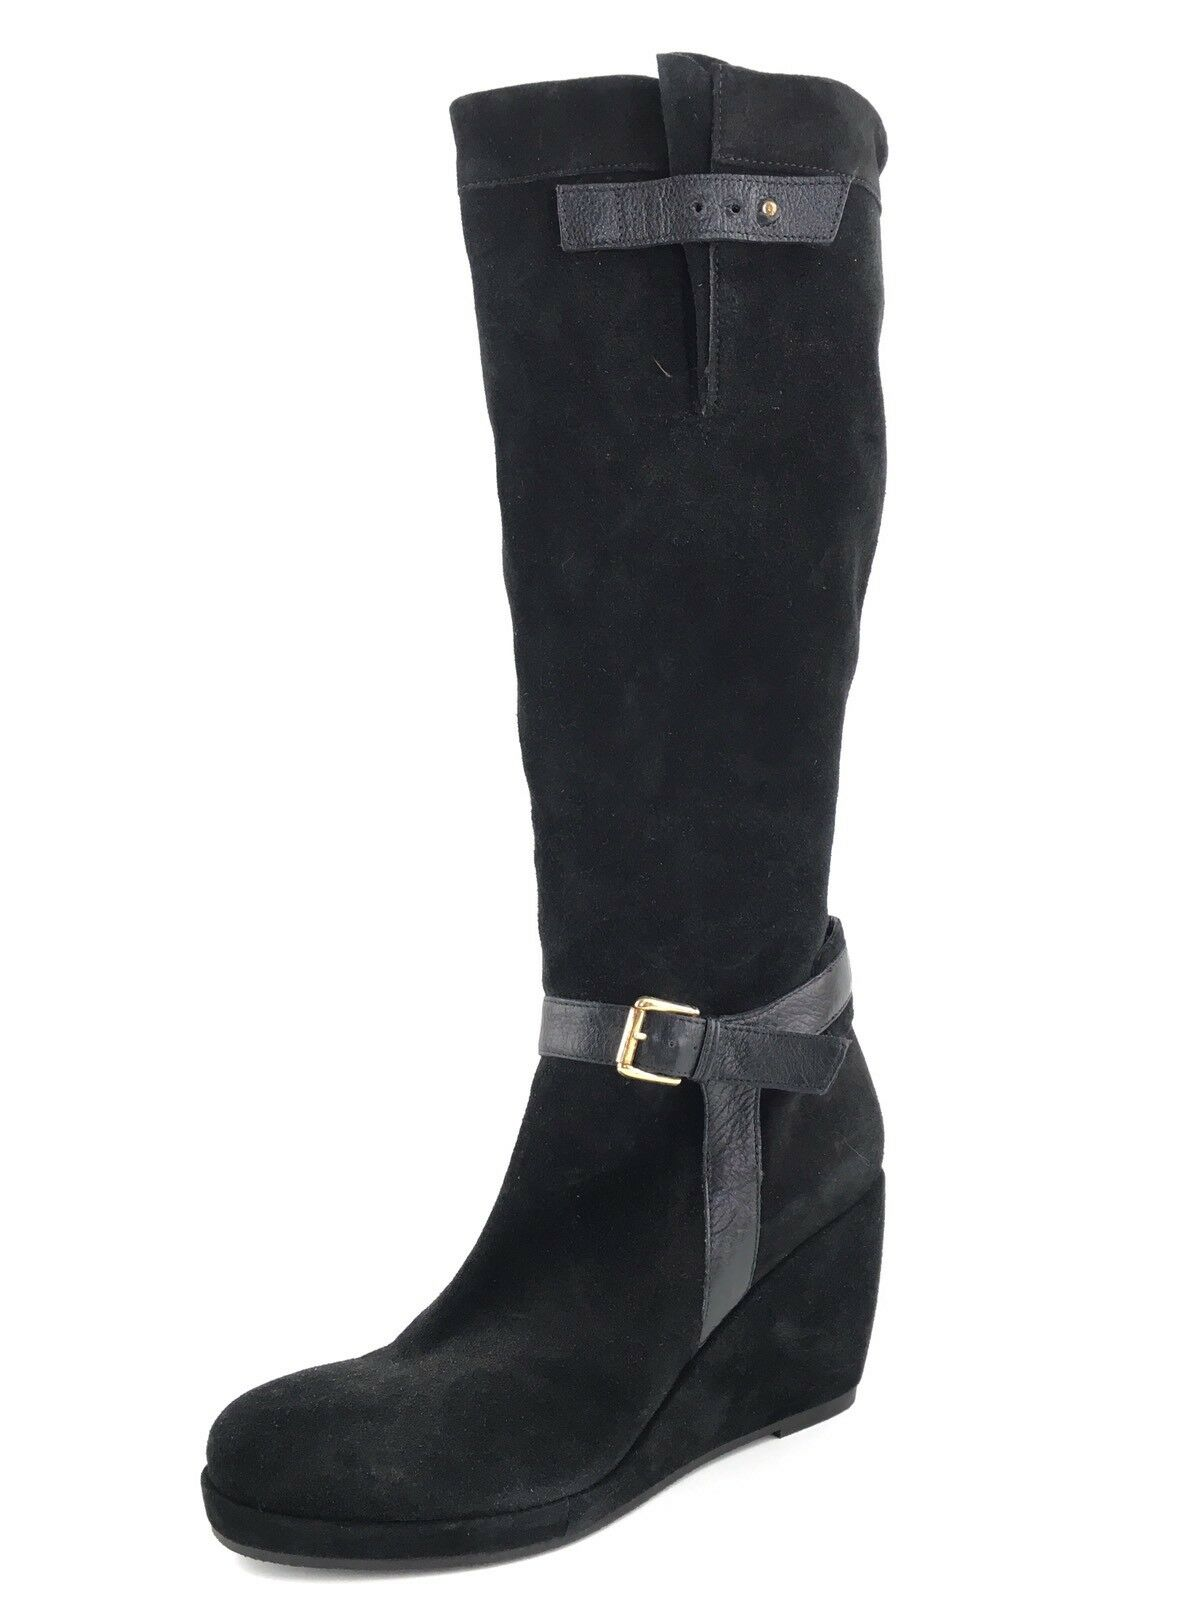 New Anyi Lu Blaire Black Suede Knew High Wedge Boots Womens Size 9.5 M  695